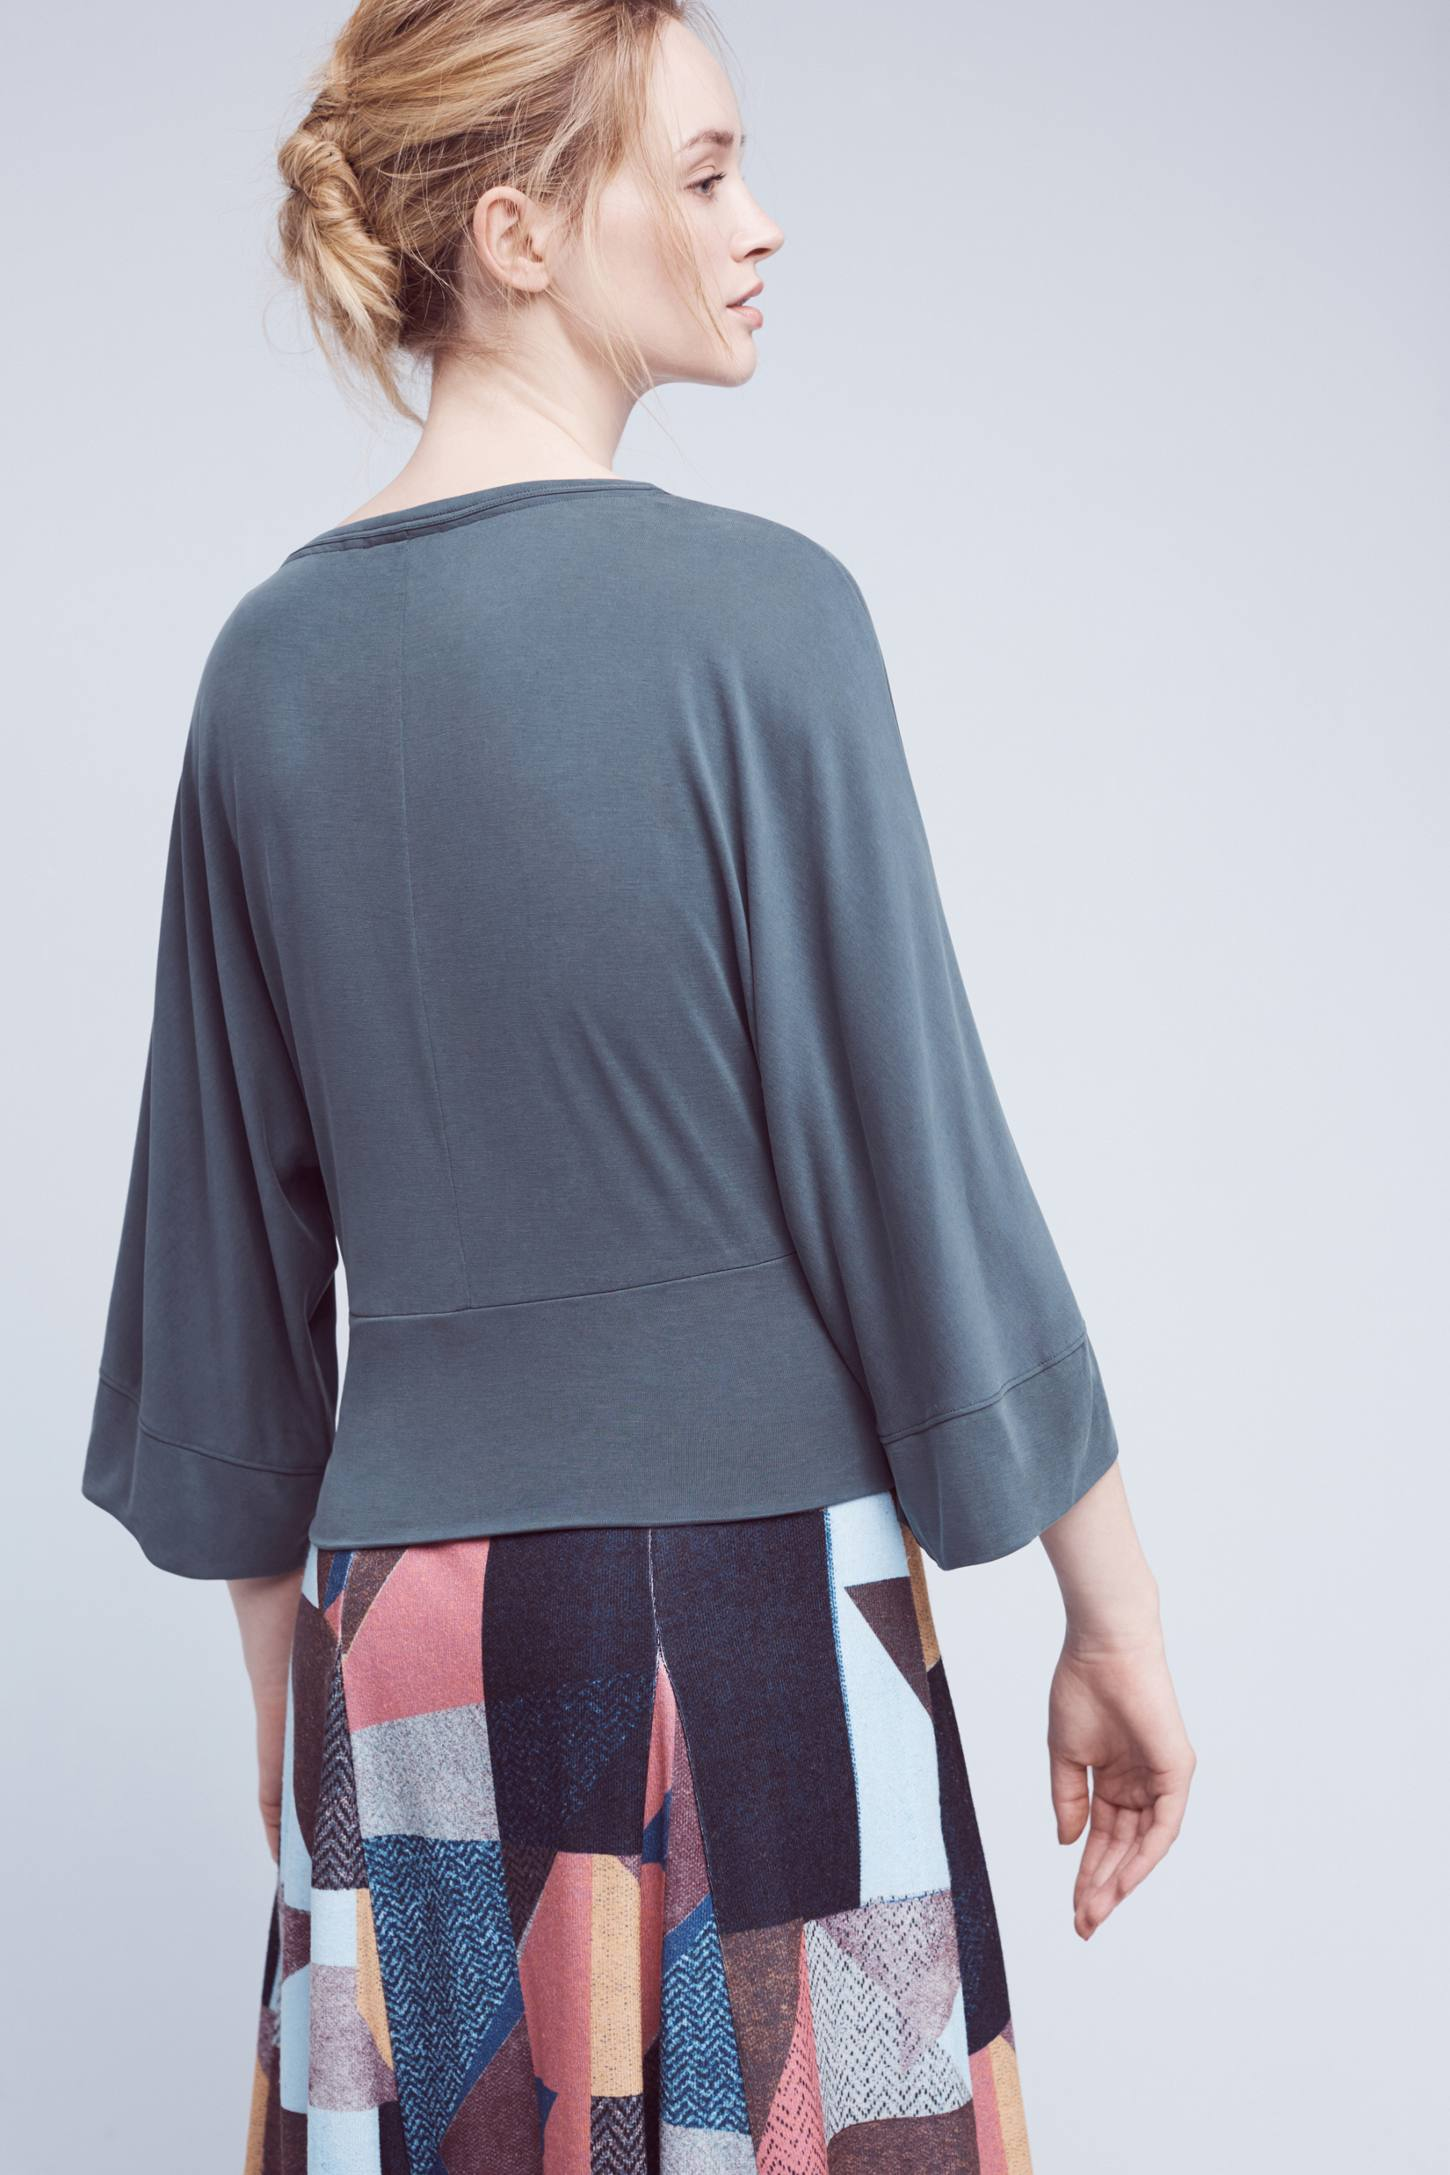 Slide View: 4: Wandertrail Dolman Top